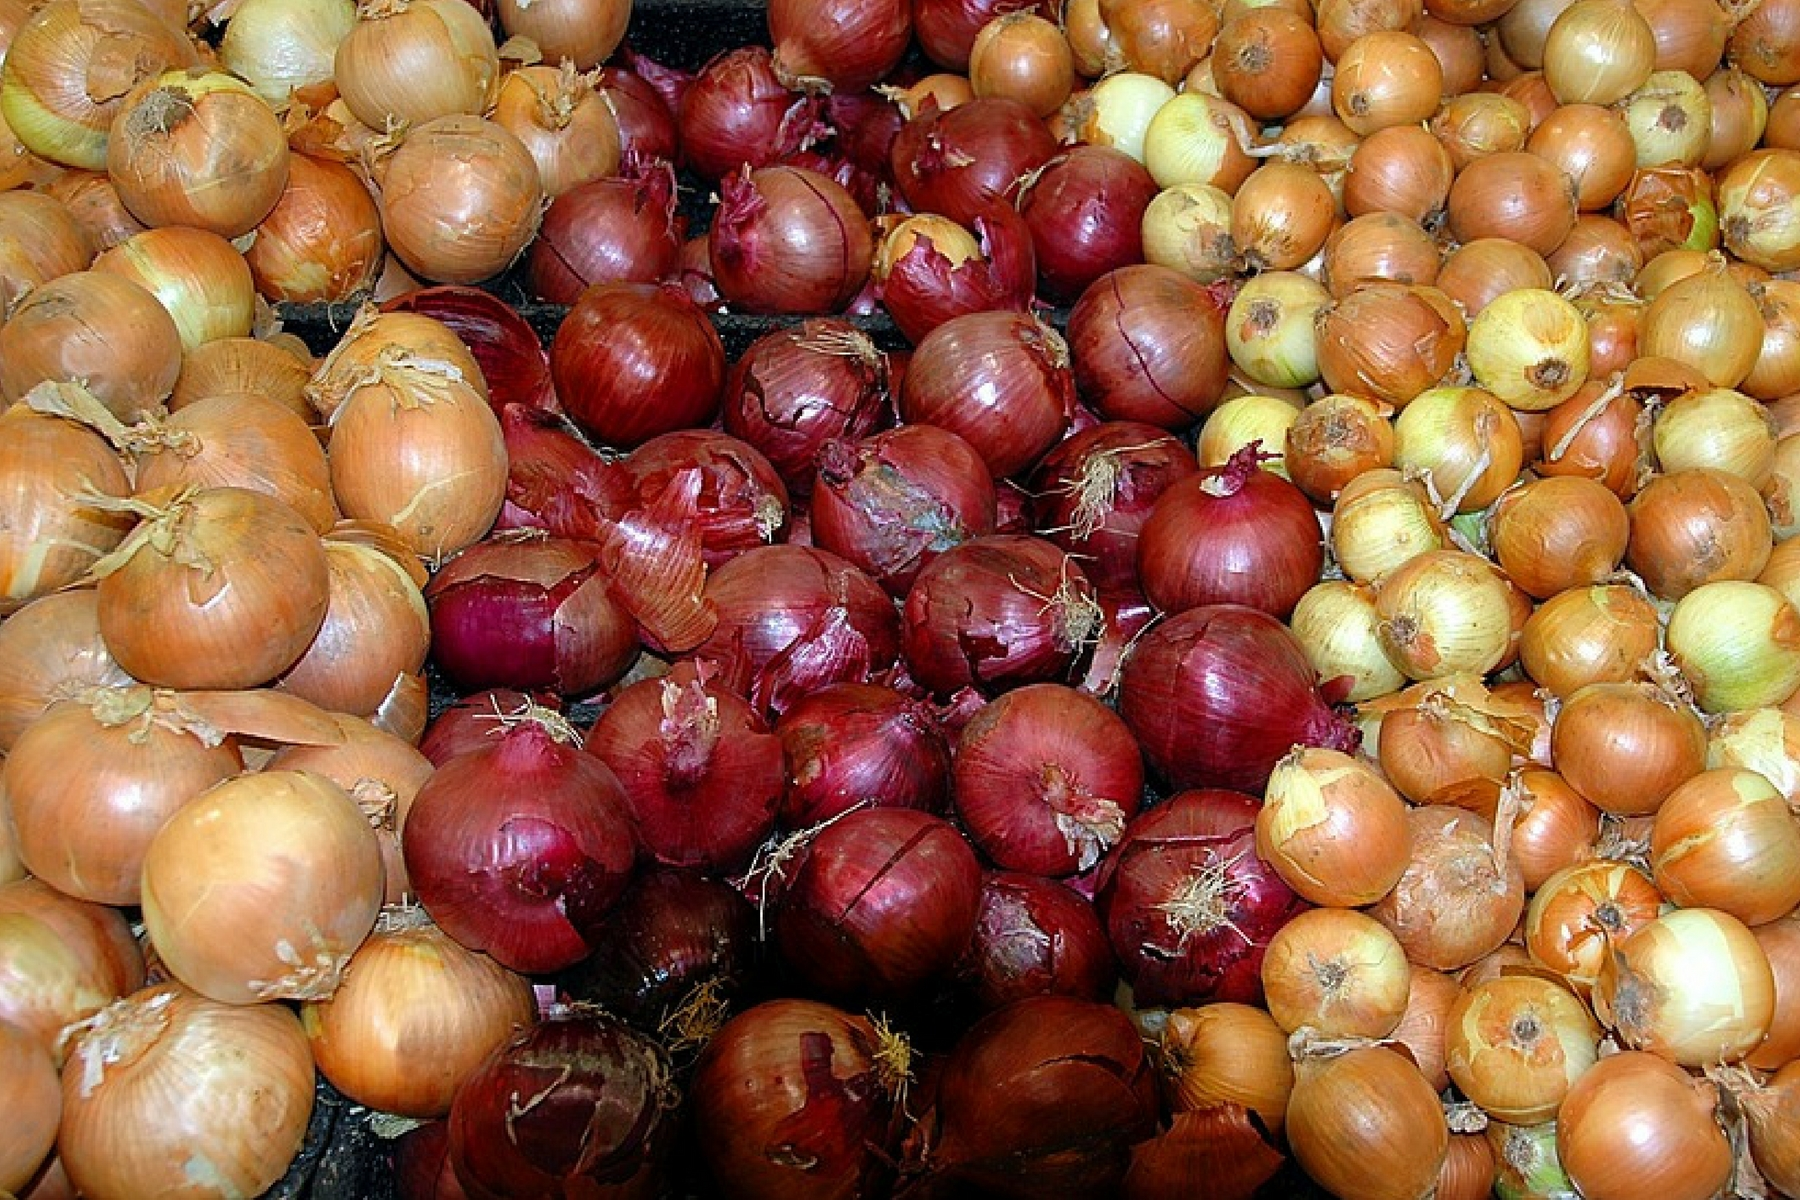 White and red onions